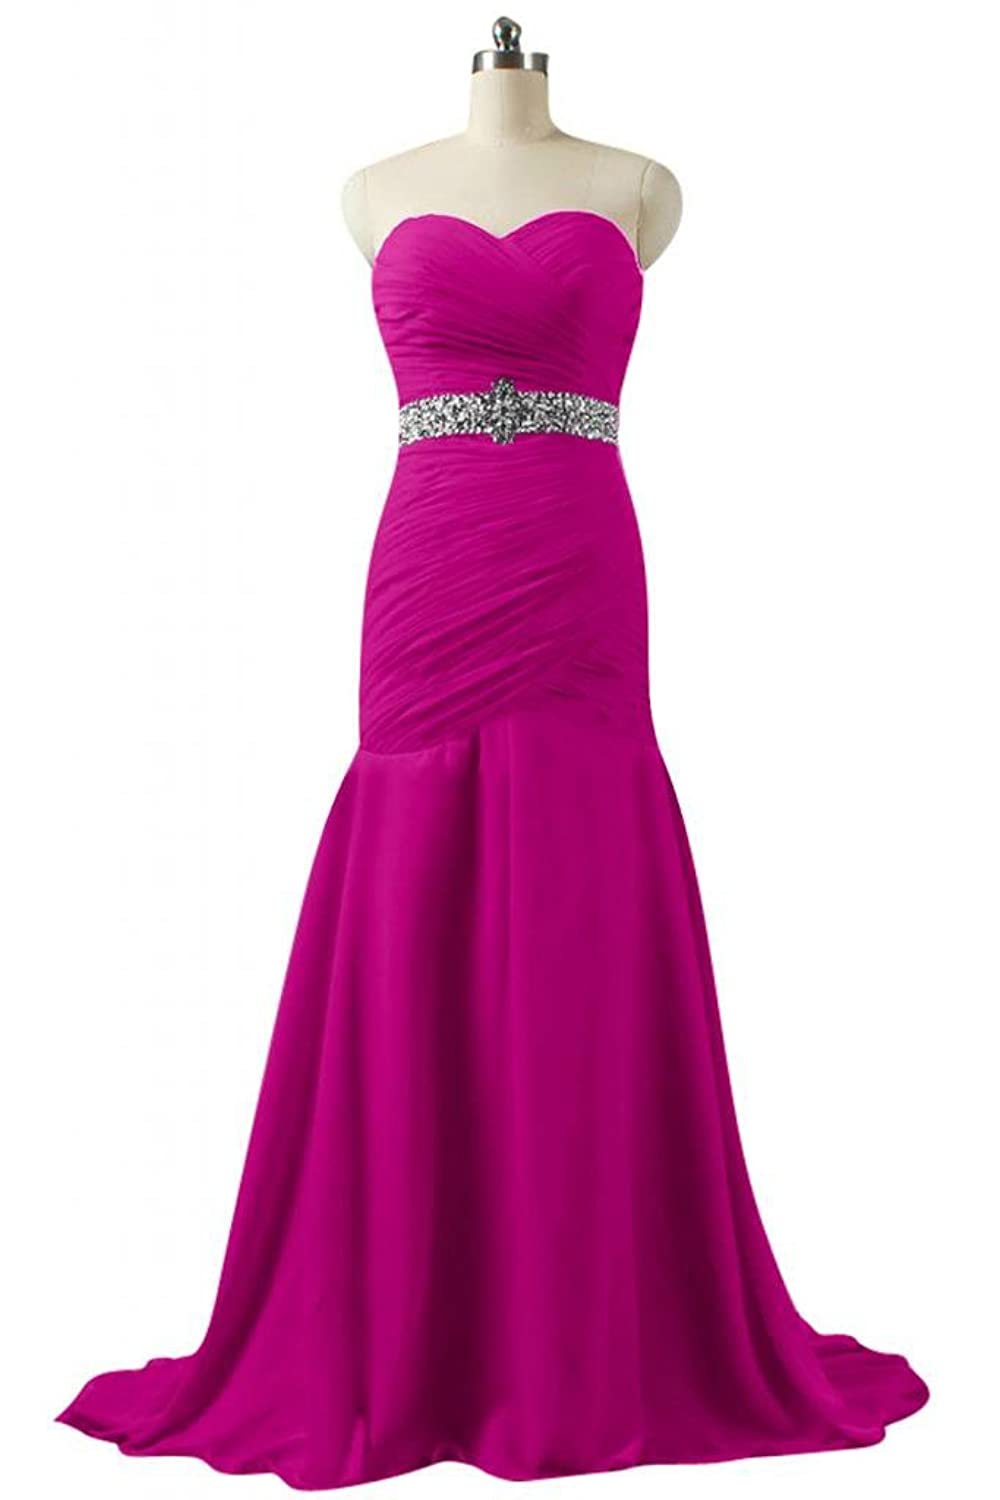 Sunvary Charming Satin Long Mermaid Evening Dress Prom Dress Pageant